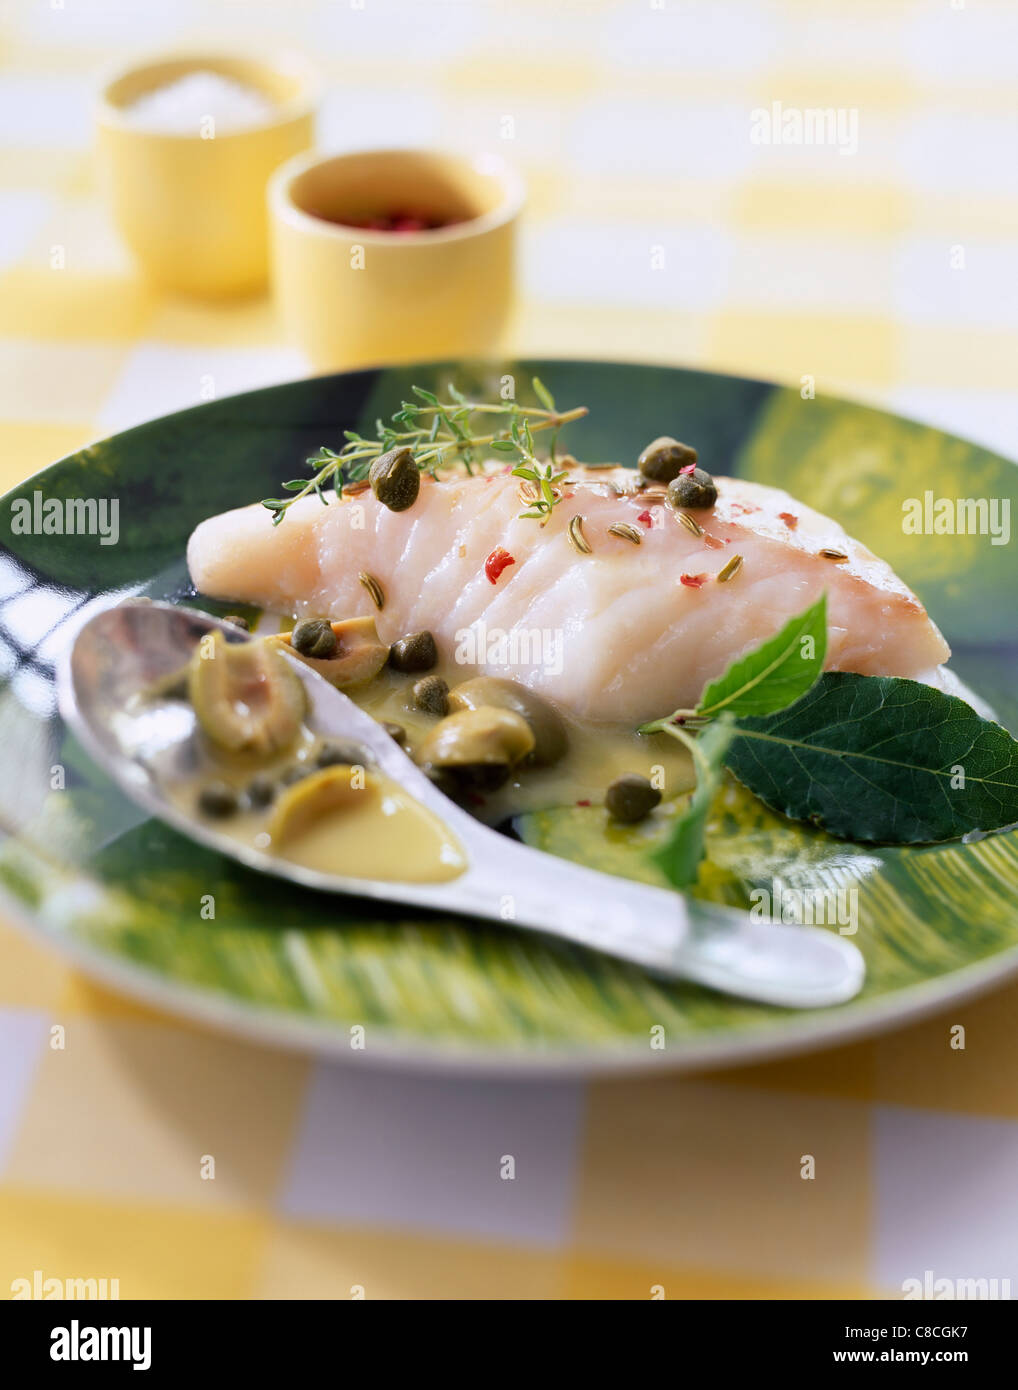 Steam cooked piece of cod with aromatic herbs stock photo for Aromatic herb for fish